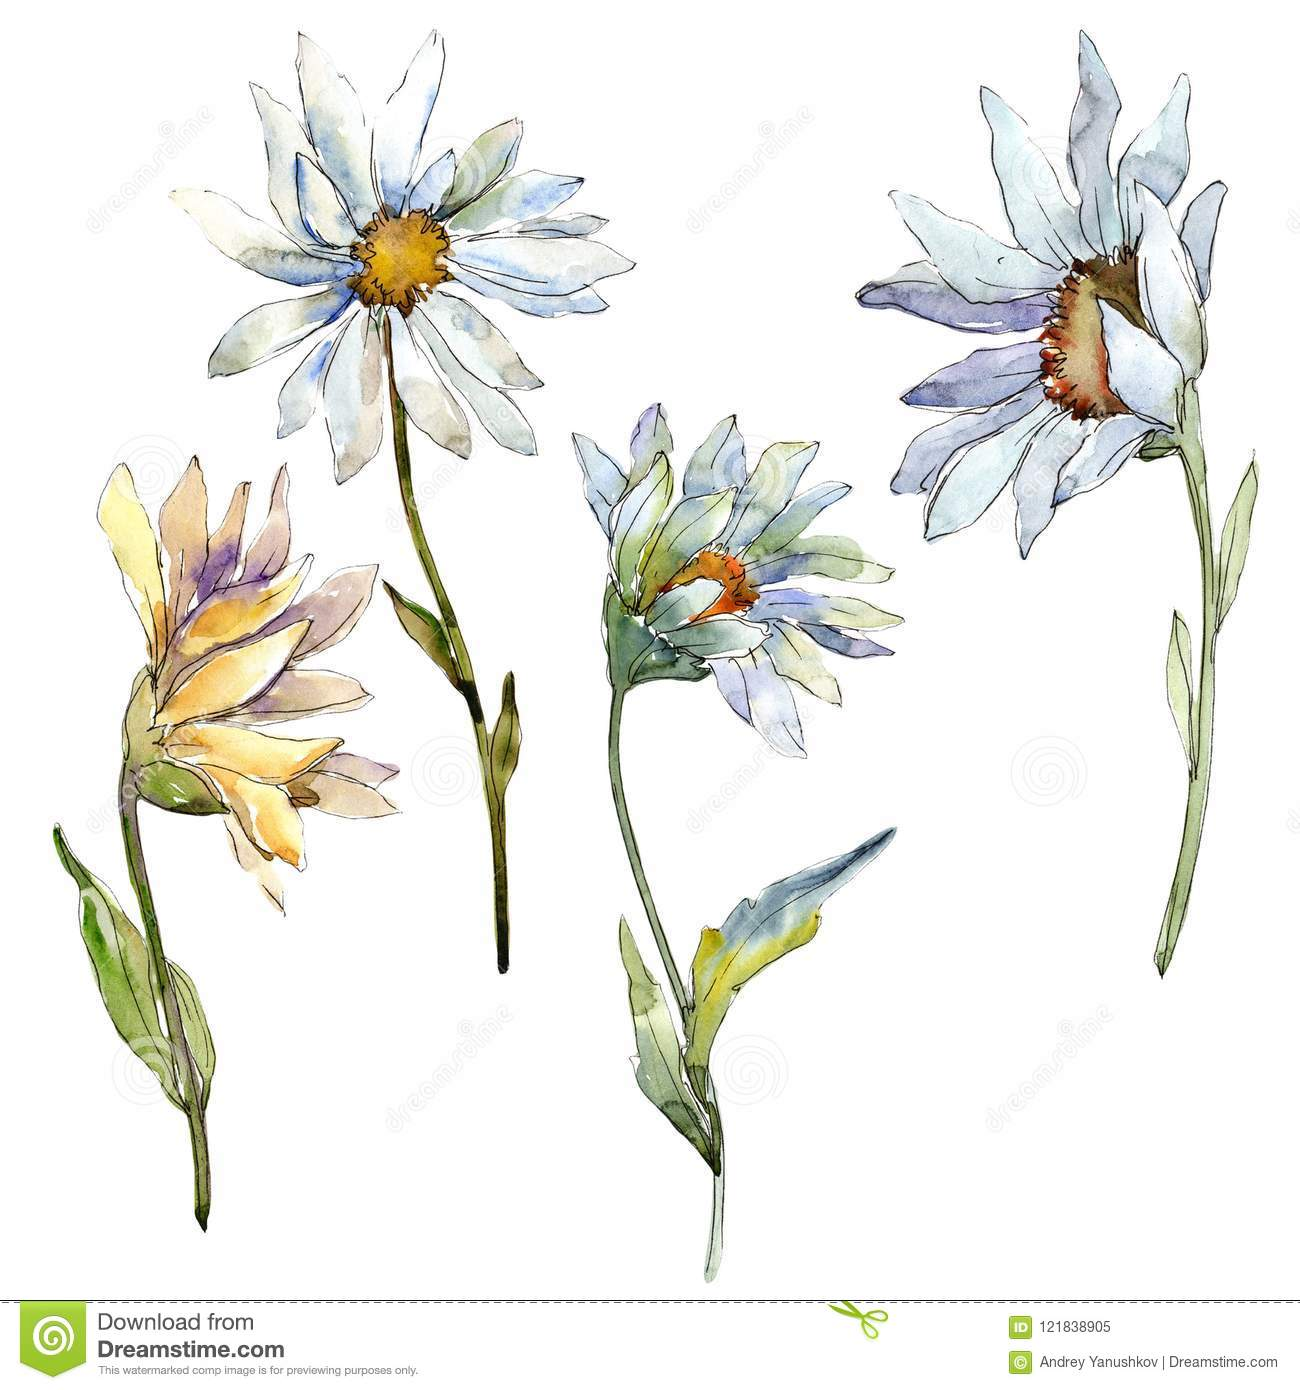 White daisy flower. Floral botanical flower. Isolated illustration element.